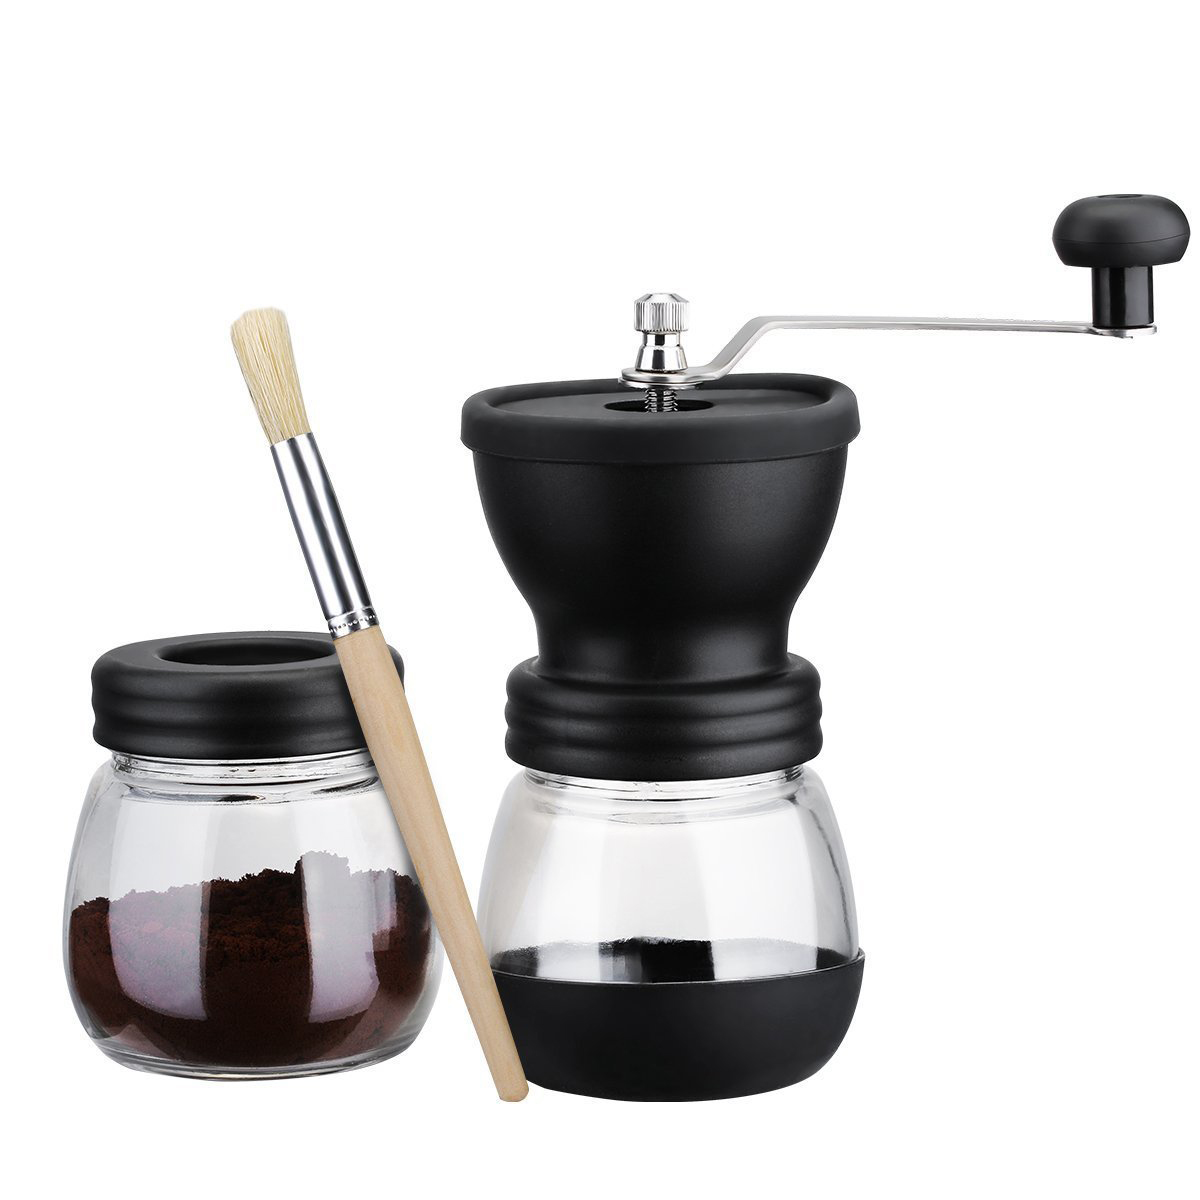 Ecocoffee BM155 Washable Coffee Grinder